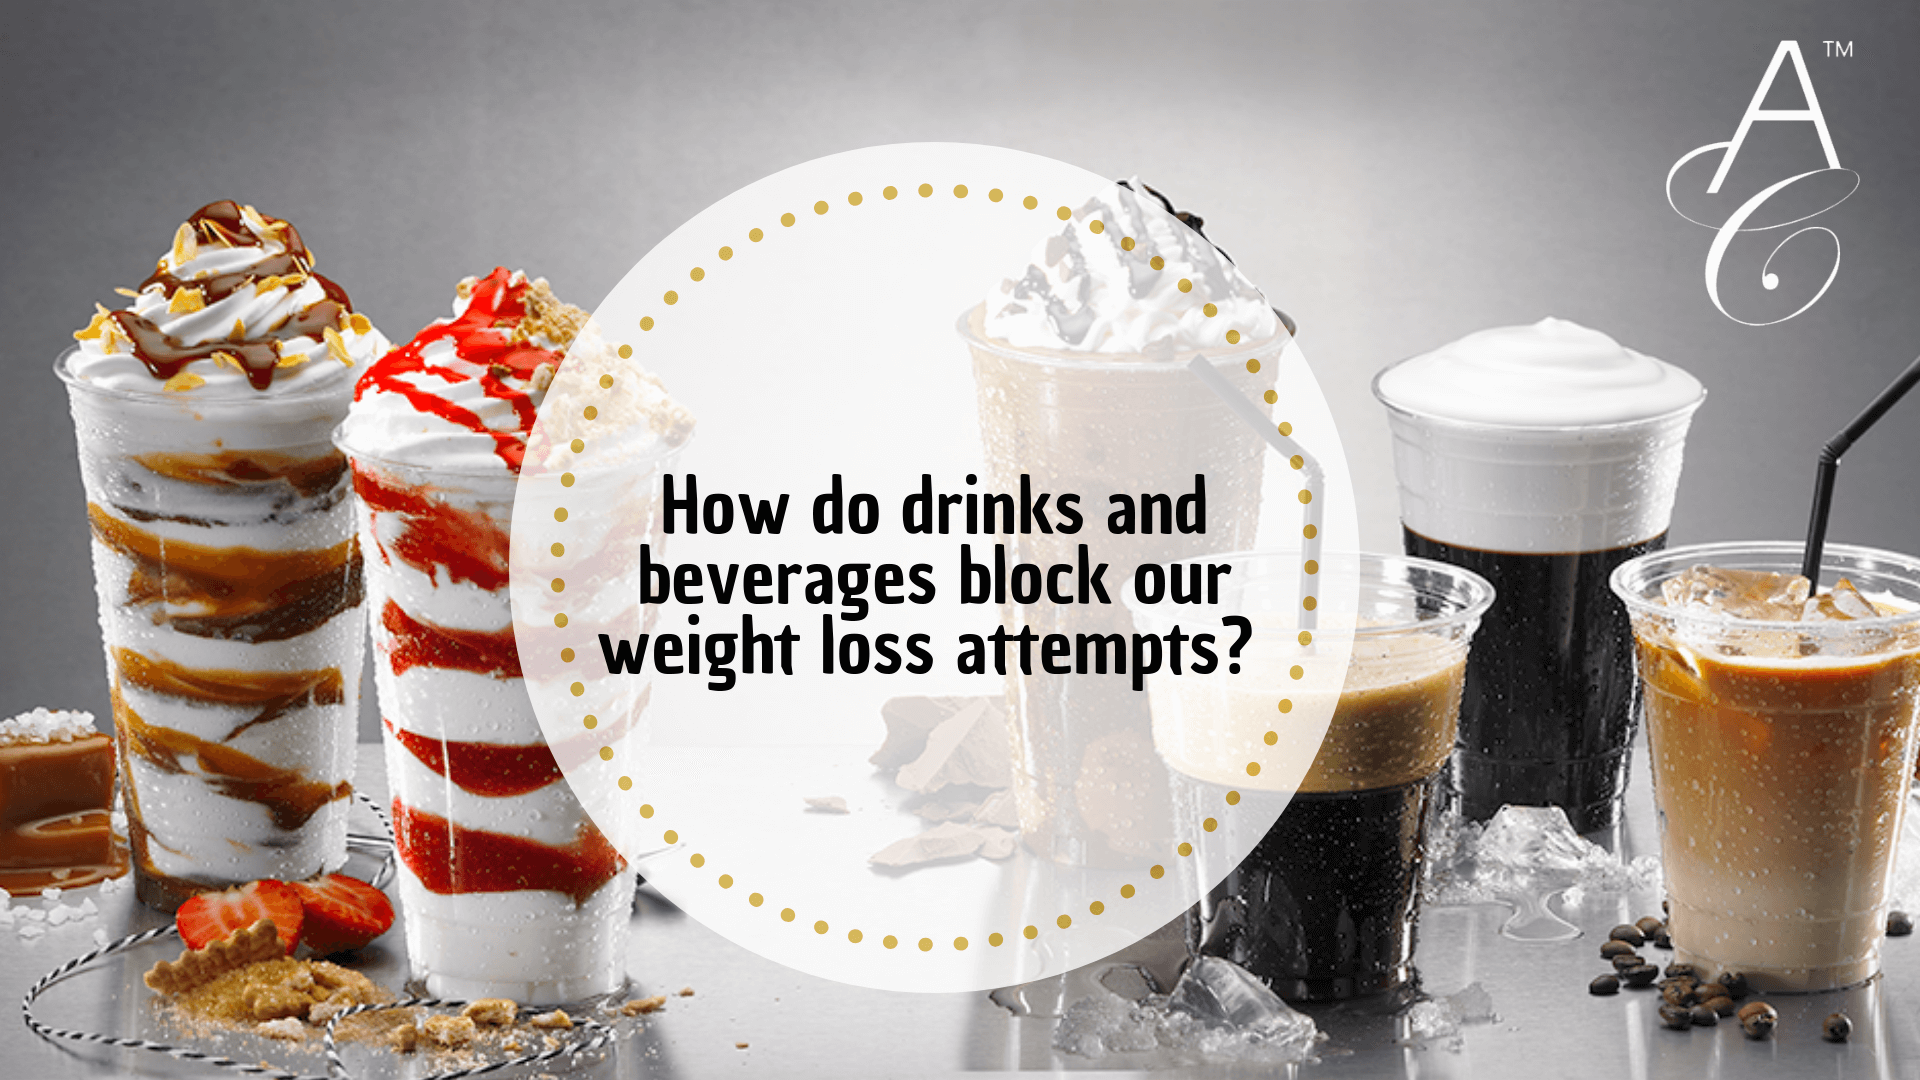 How do drinks and beverages block our weight loss attempts?